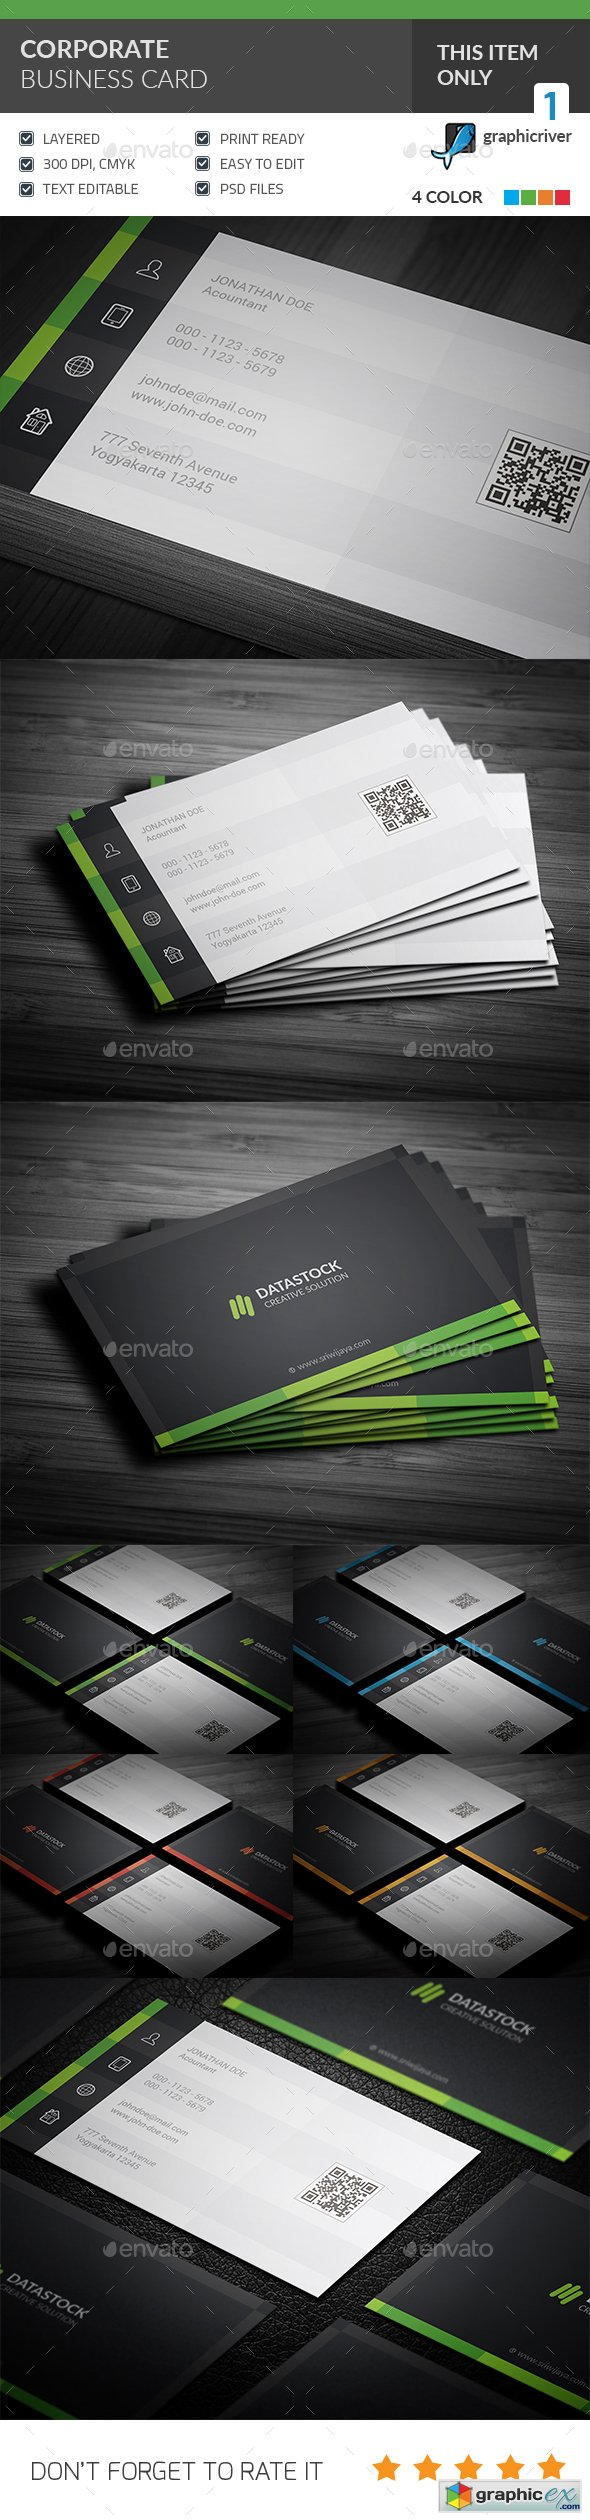 Corporate Business Card 20167875